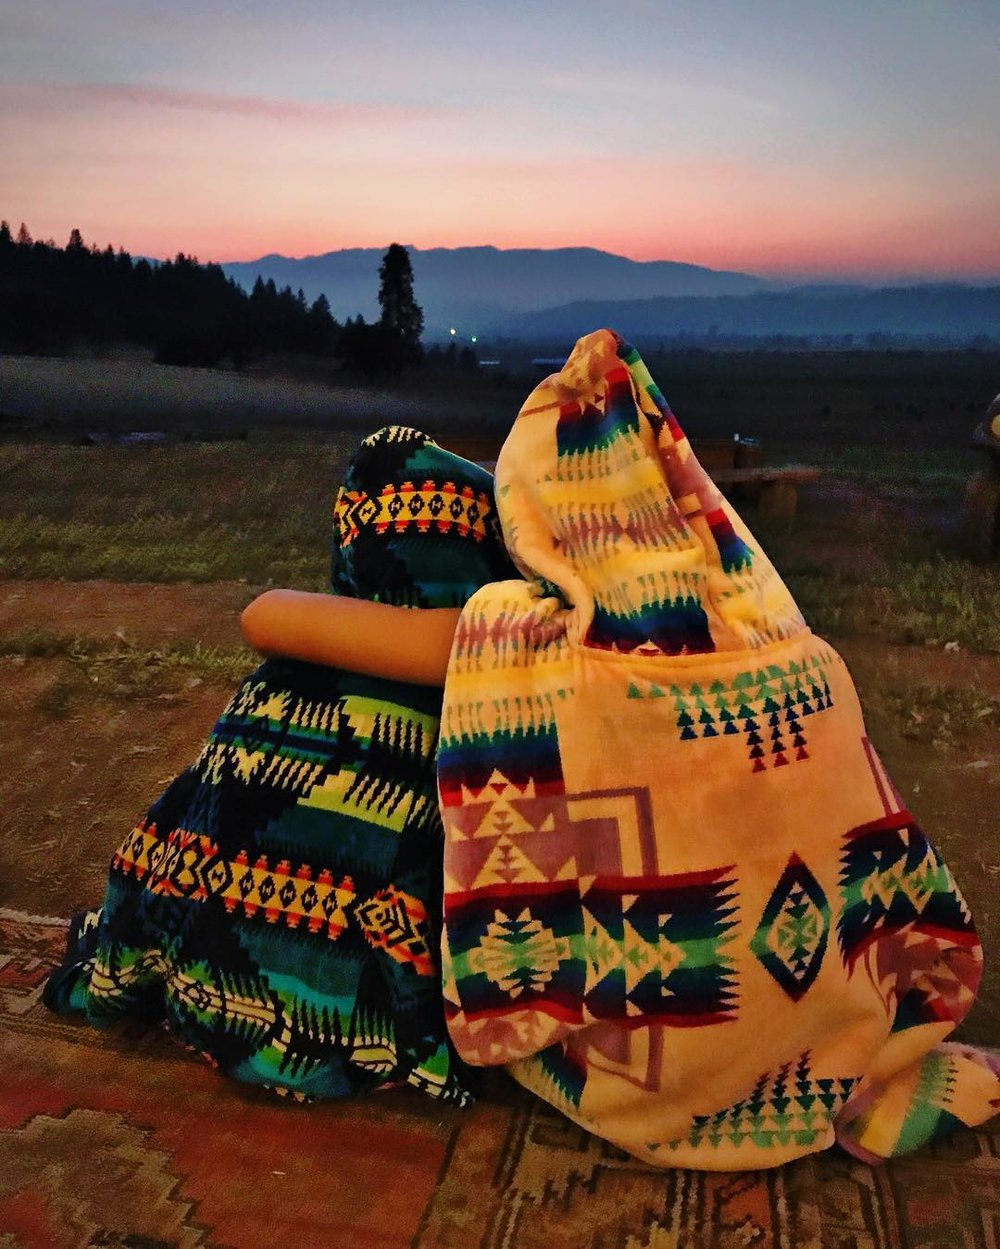 Sunday night twilight showers at camp for these sisters with their favorite hoodie towels and the last few minutes of pink sky sunset. ✨%0A#campfivemarys #sisterhood #tinyandJJ #pendleton #pendletontowels #m5favorites #tinytess #ohjjstyle.jpg